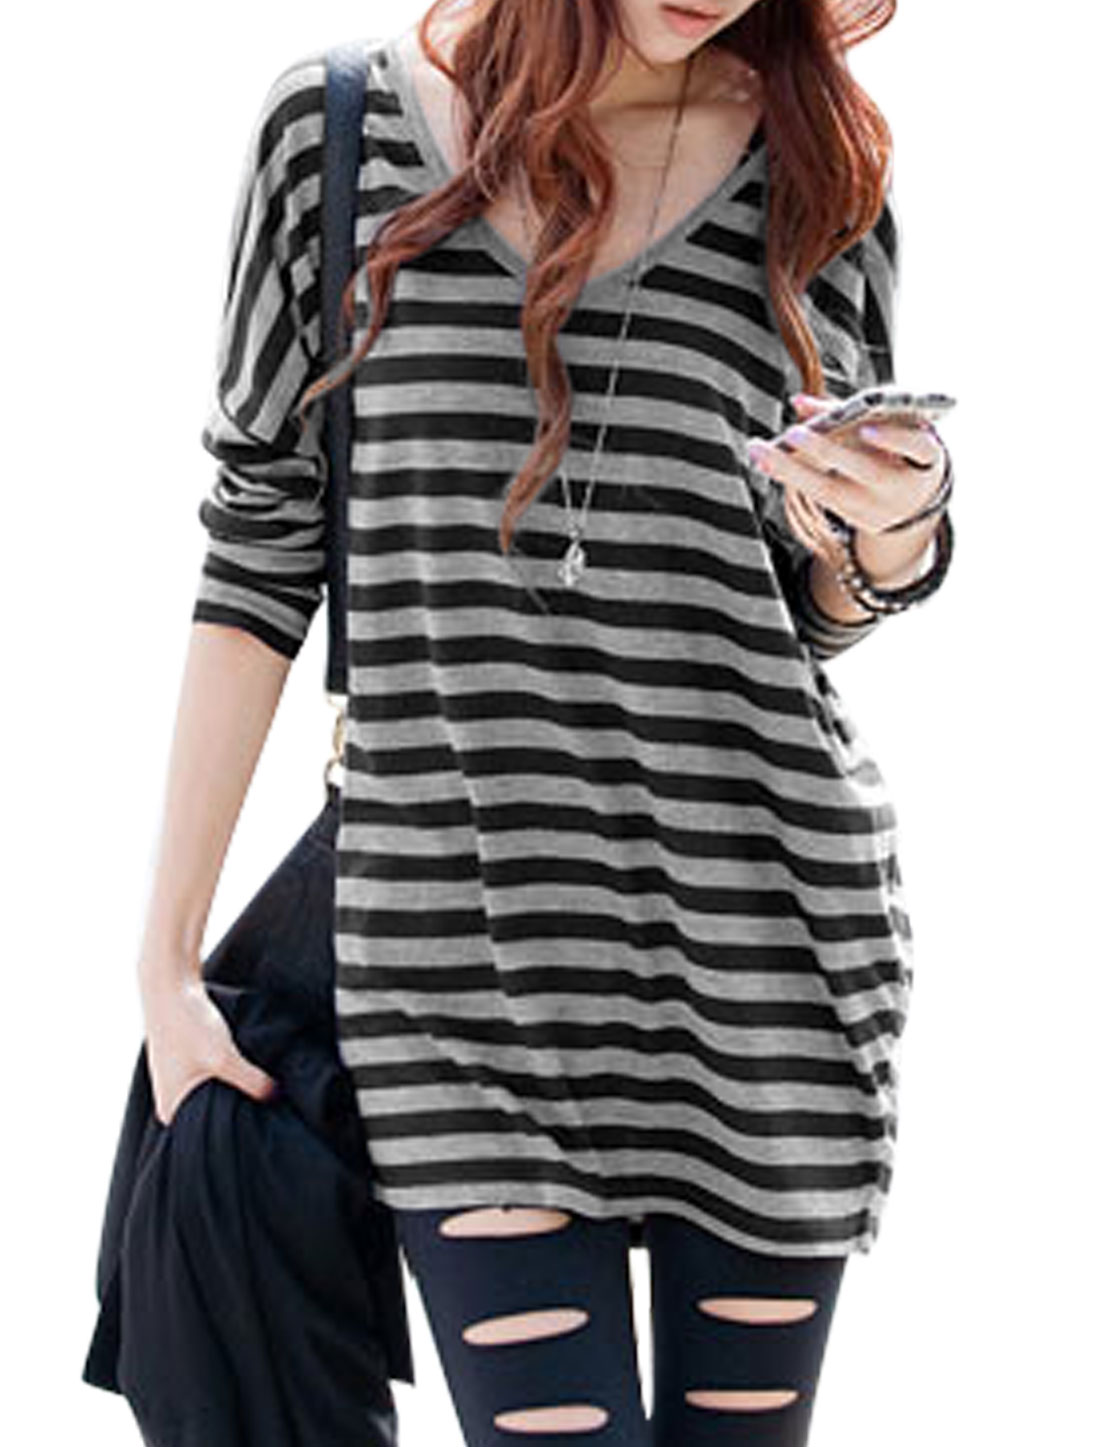 Women Round Neck Batwing Sleeves Horizontal Stripes Tunic Top Black Gray S